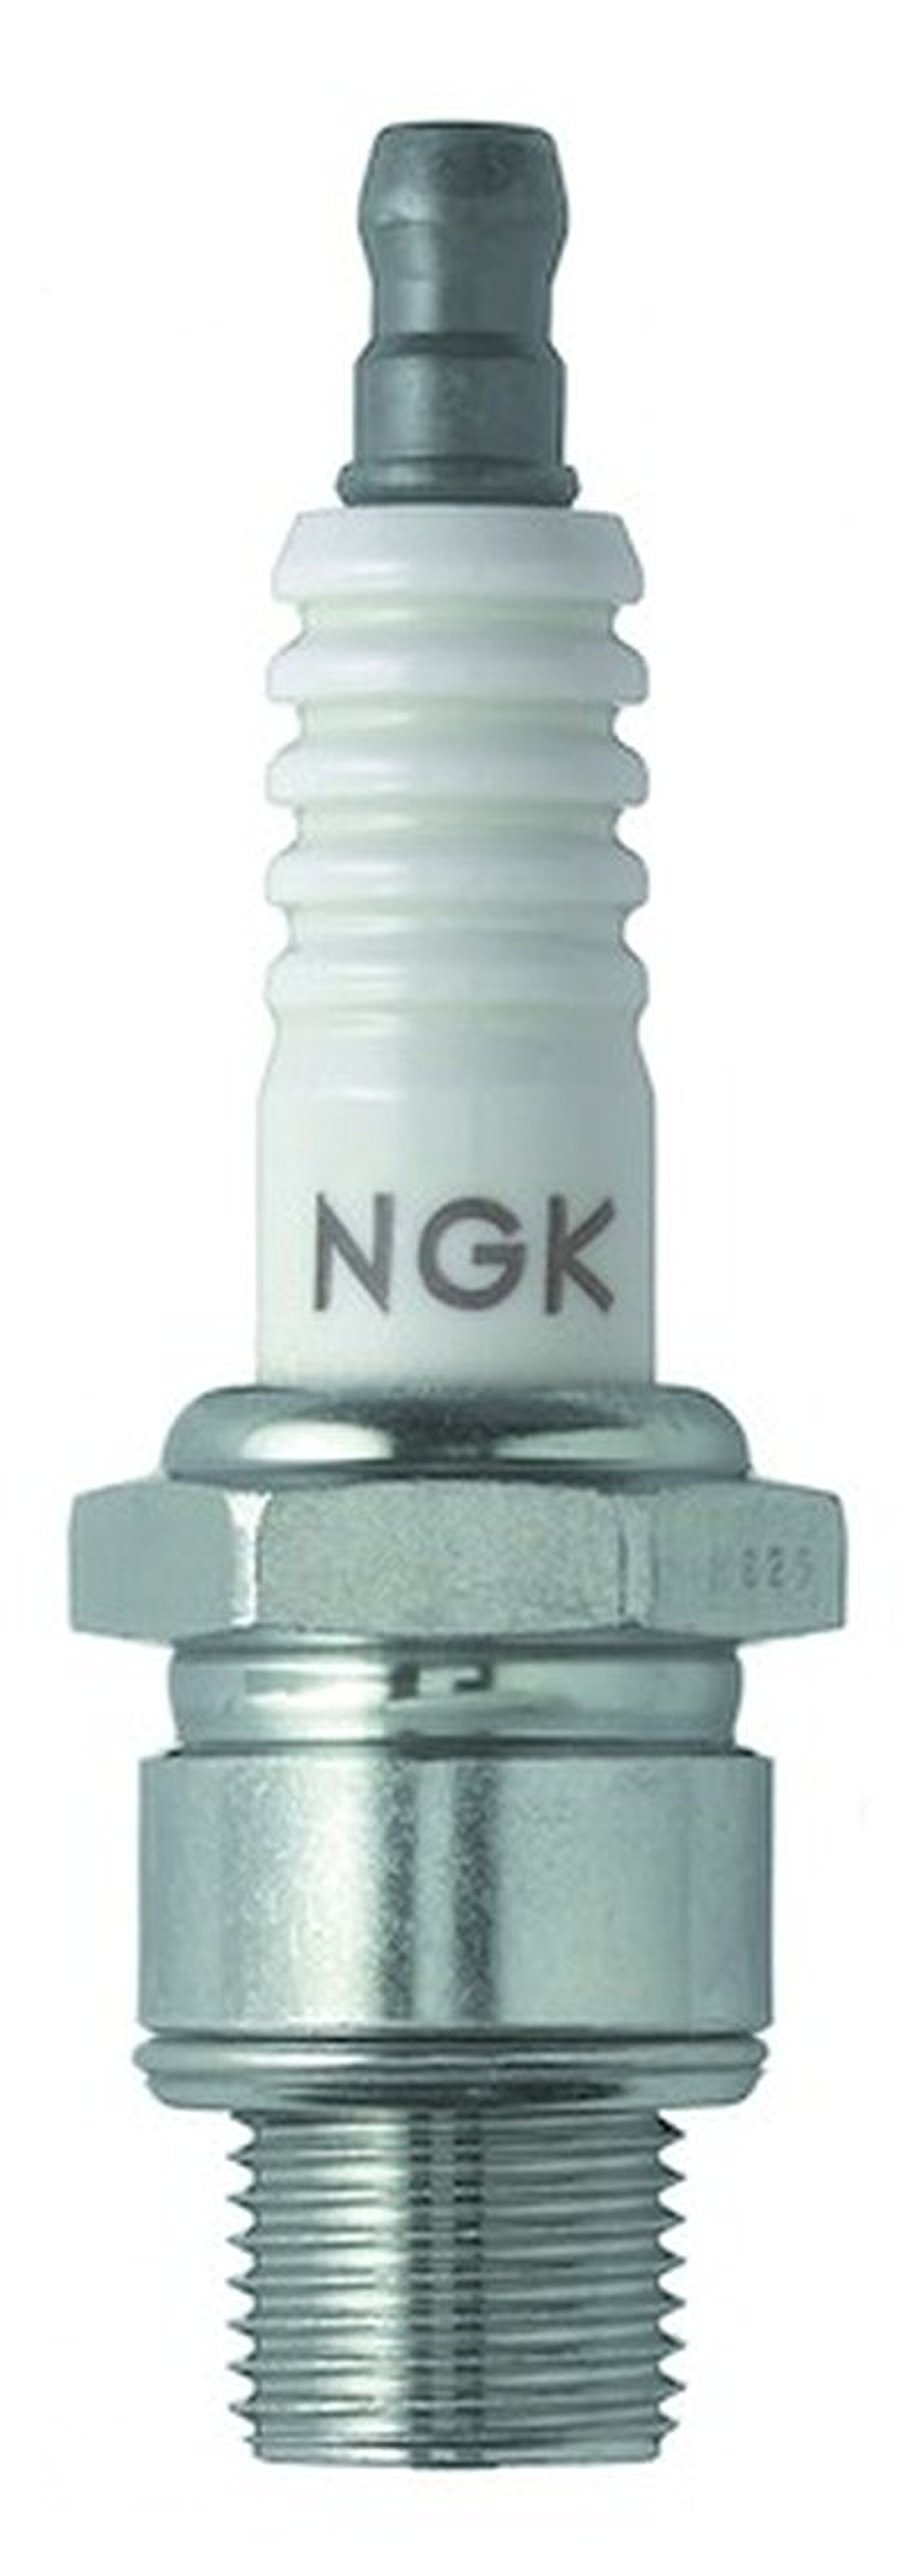 Set (10pcs) NGK Standard Spark Plugs Stock 5626 Nickel Core Tip Surface Discharge Type 0.070in BUHW-2